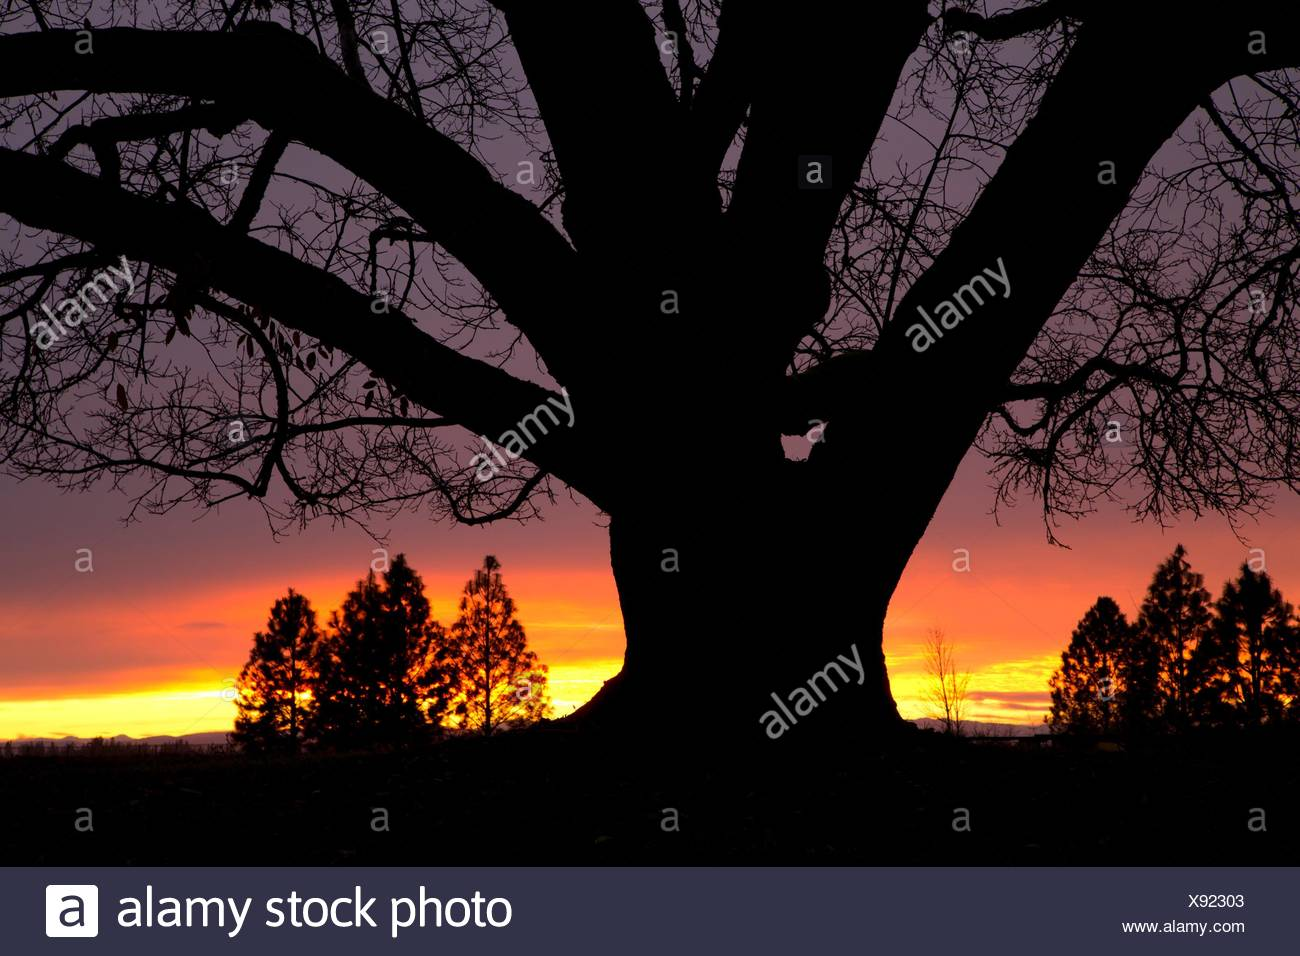 Oregon oak (Quercus garryana) sunrise, Willamette Mission State Park, Marion County, Oregon. - Stock Image